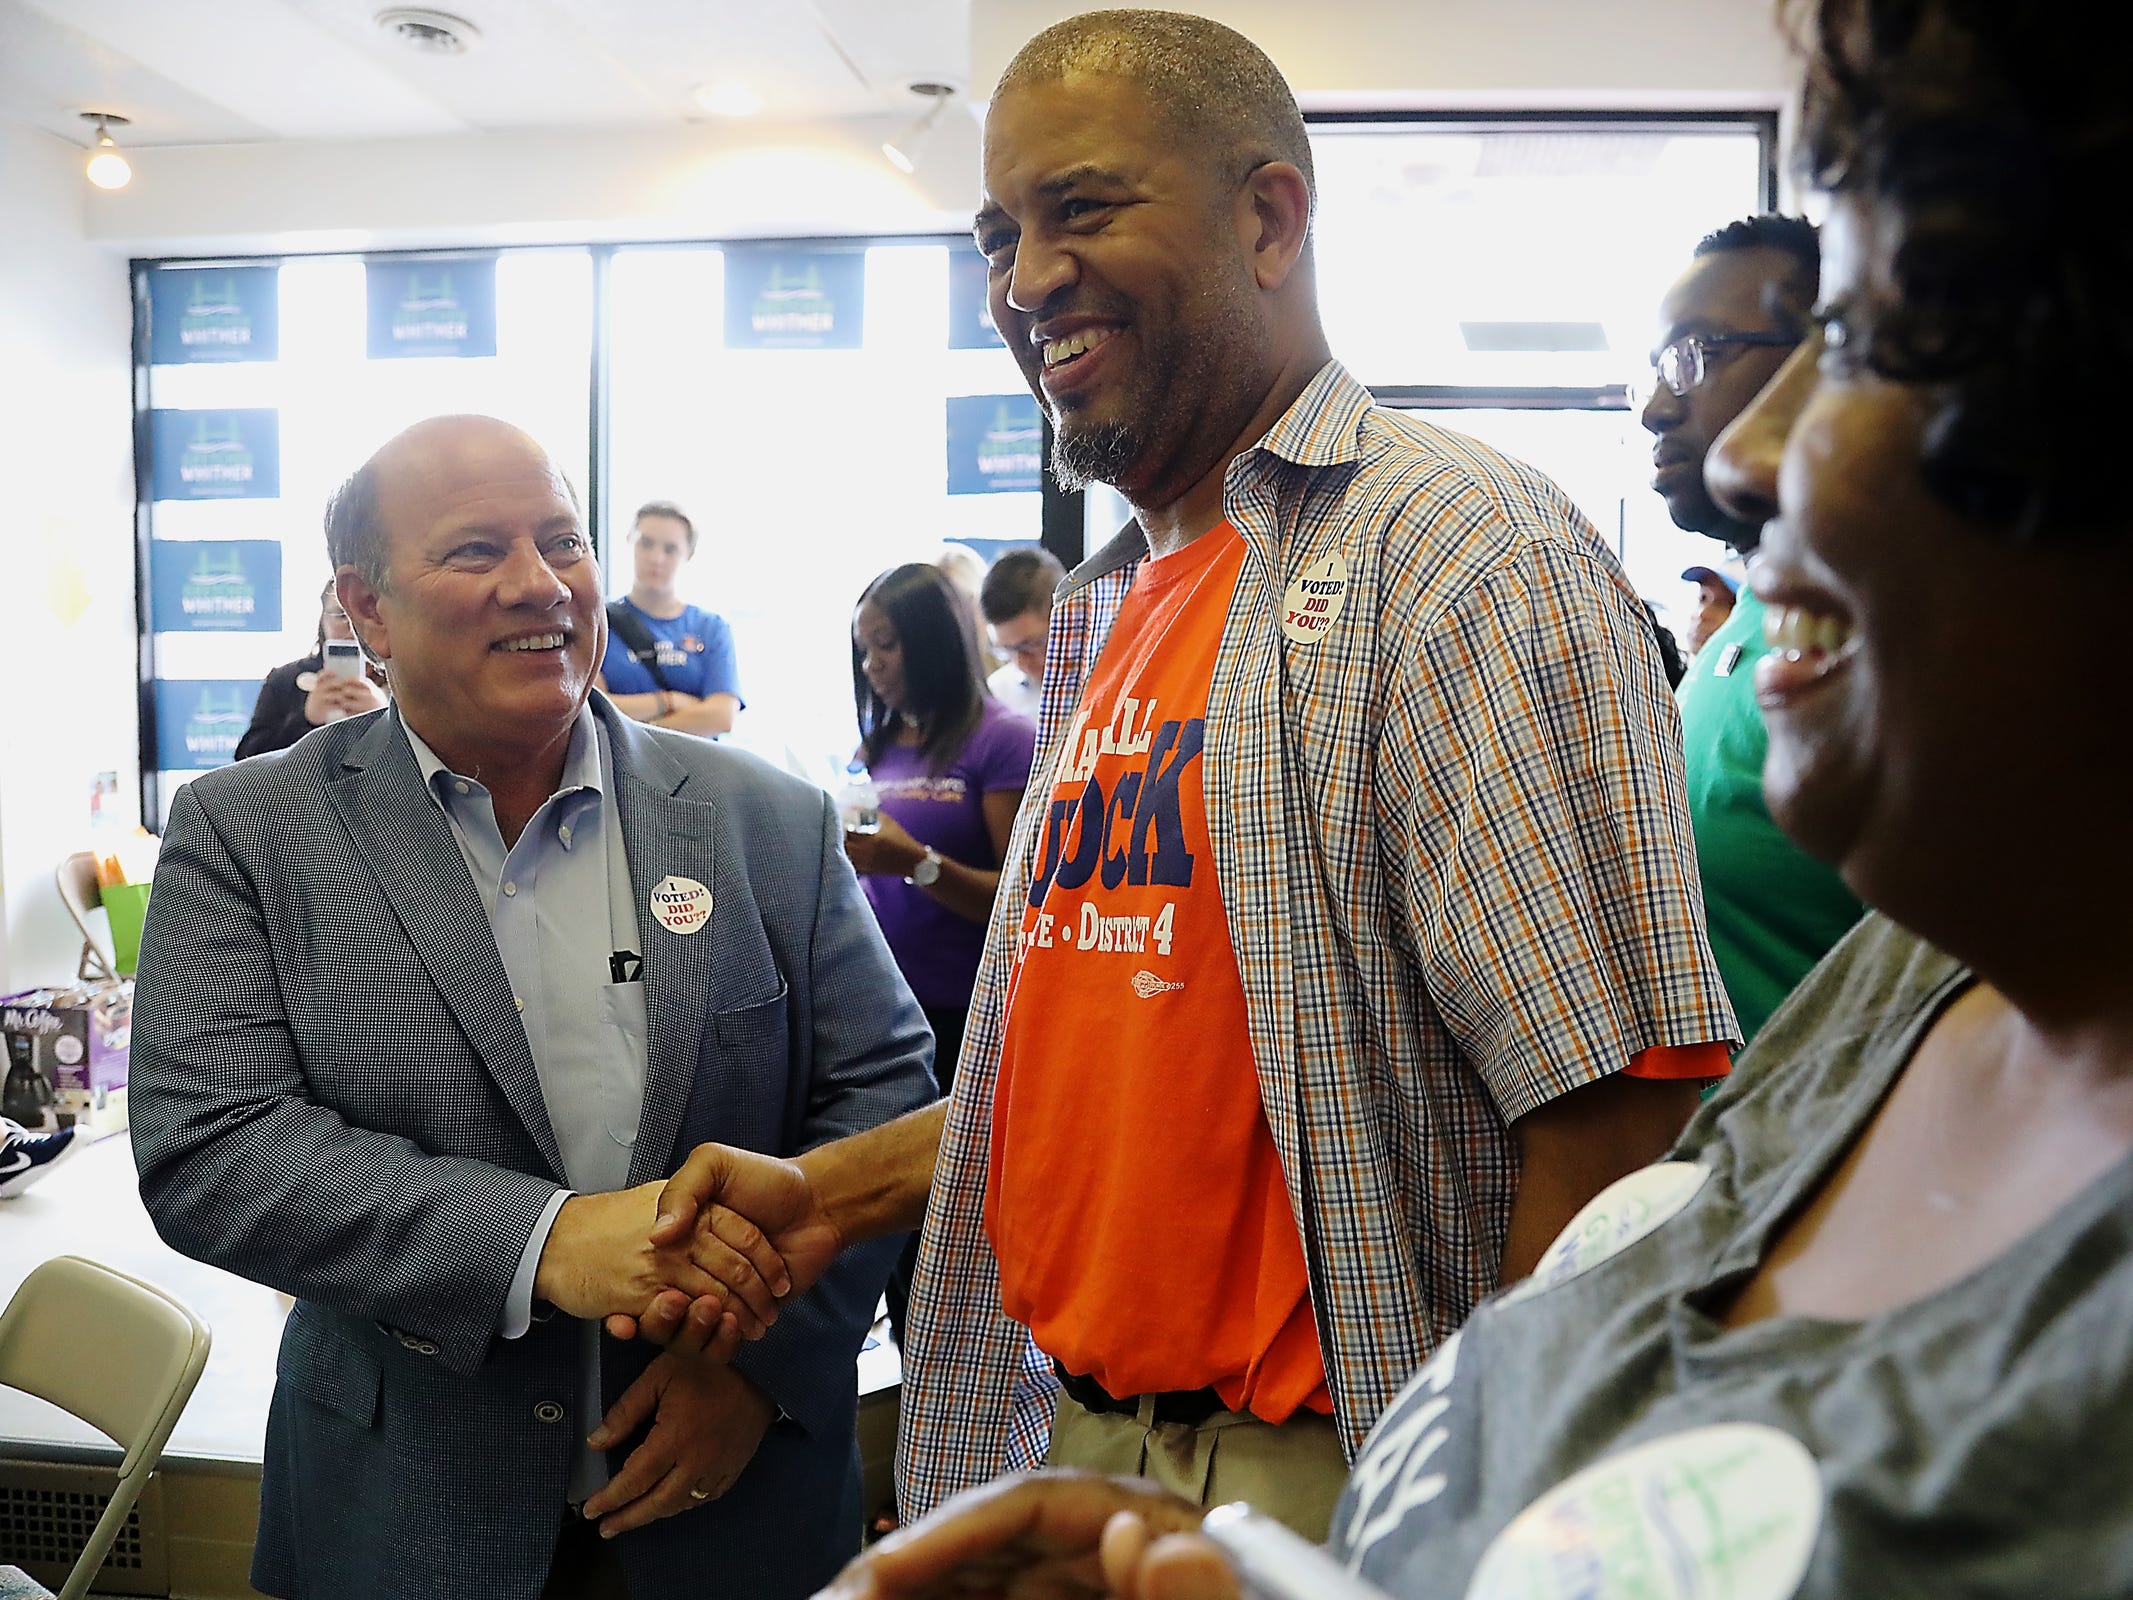 Detroit Mayor Mike Duggan shakes hands with Marshall Bullock, who is running for District 4 State Senate, at Gretchen Whitmer's campaign headquarters on the Livernois Avenue of Fashion in Detroit on Michigan Primary day on Tuesday, Aug. 7, 2018.